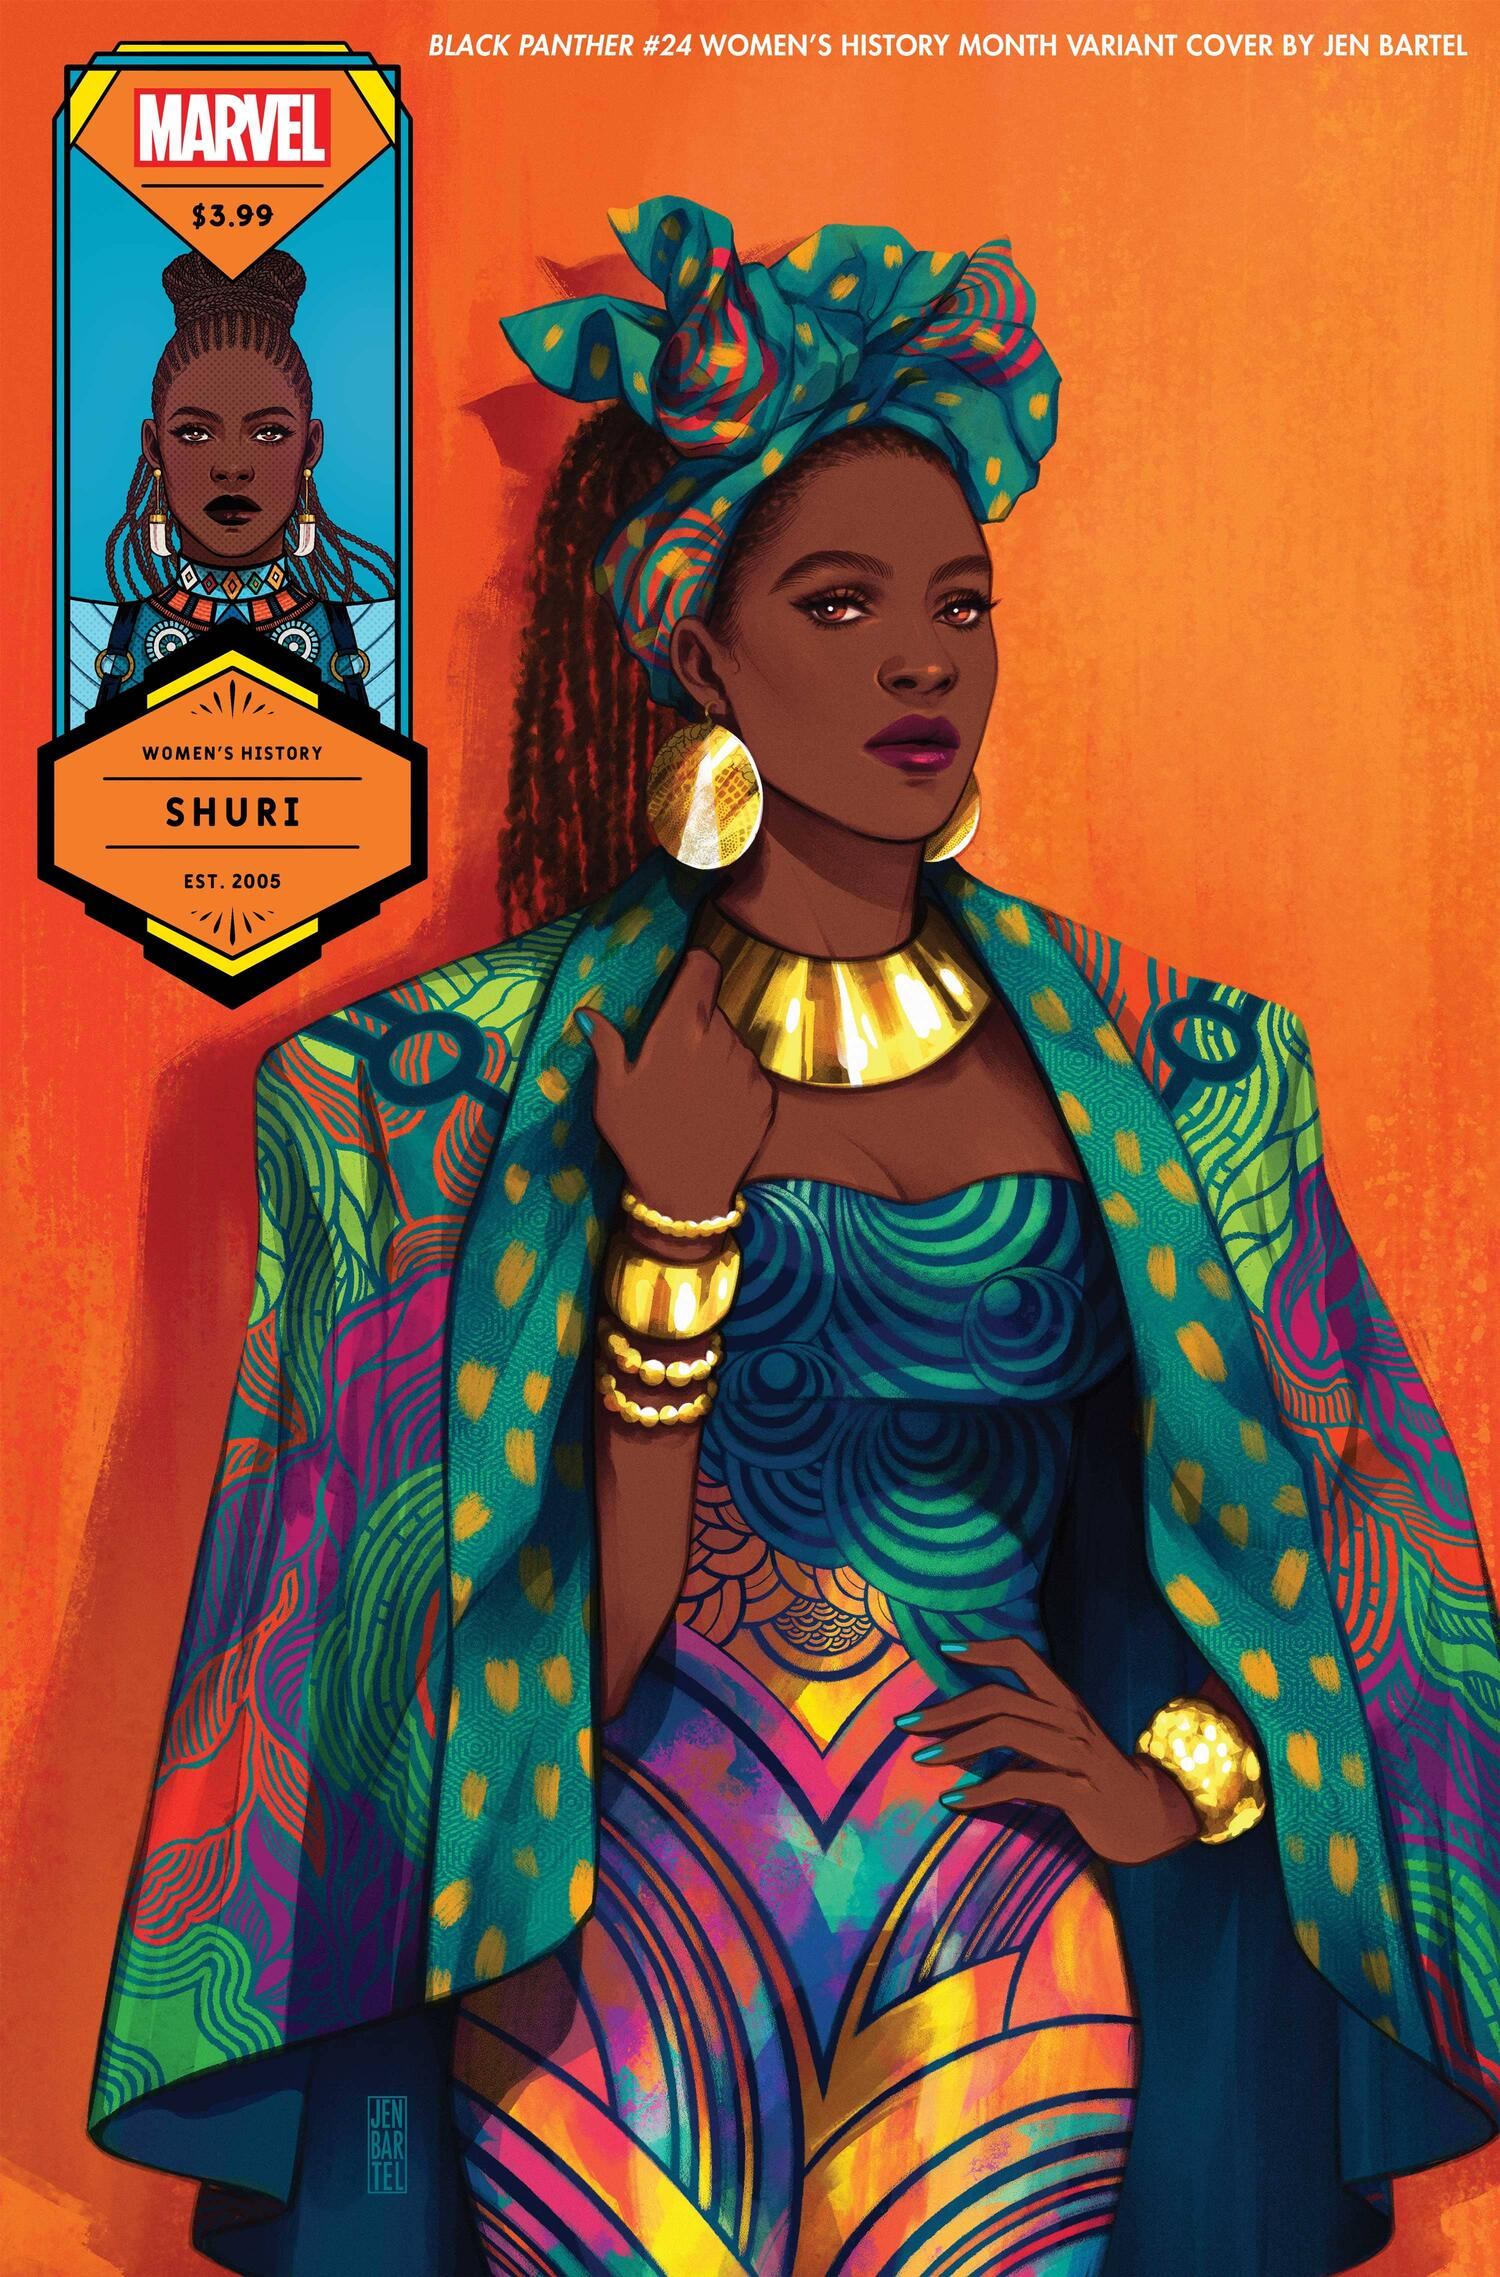 BLACK PANTHER #24 WOMEN'S HISTORY MONTH VARIANT COVER by JEN BARTEL